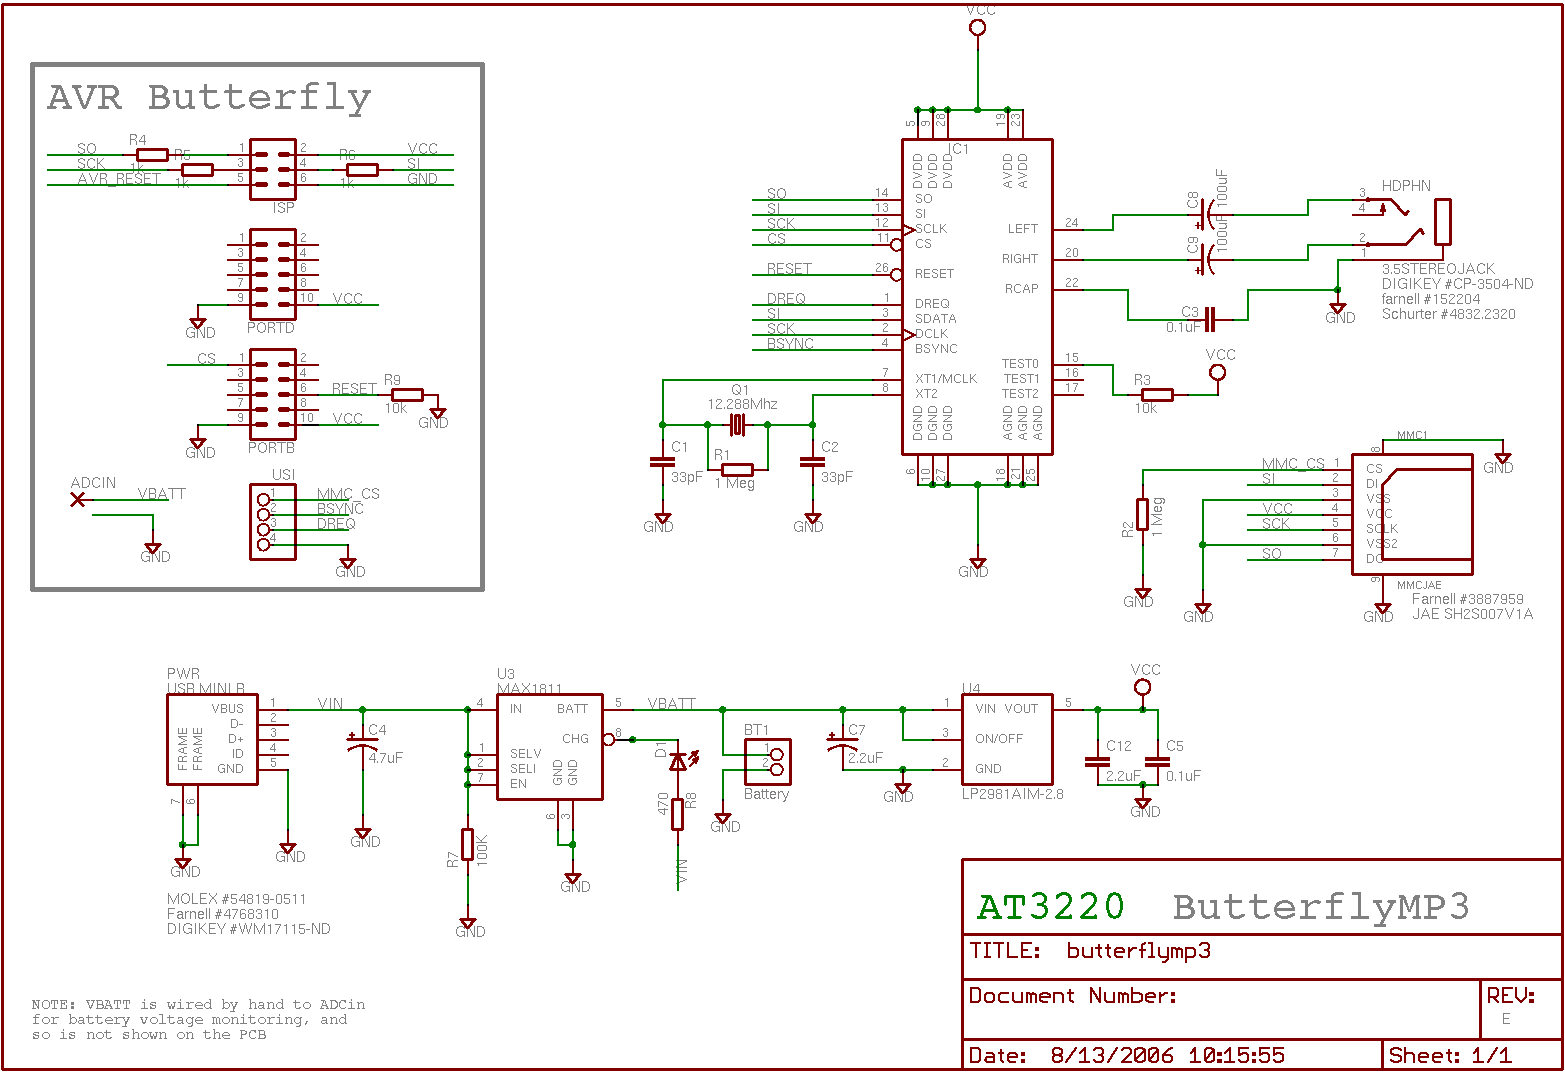 AVR Butterfly MP3 - schematic